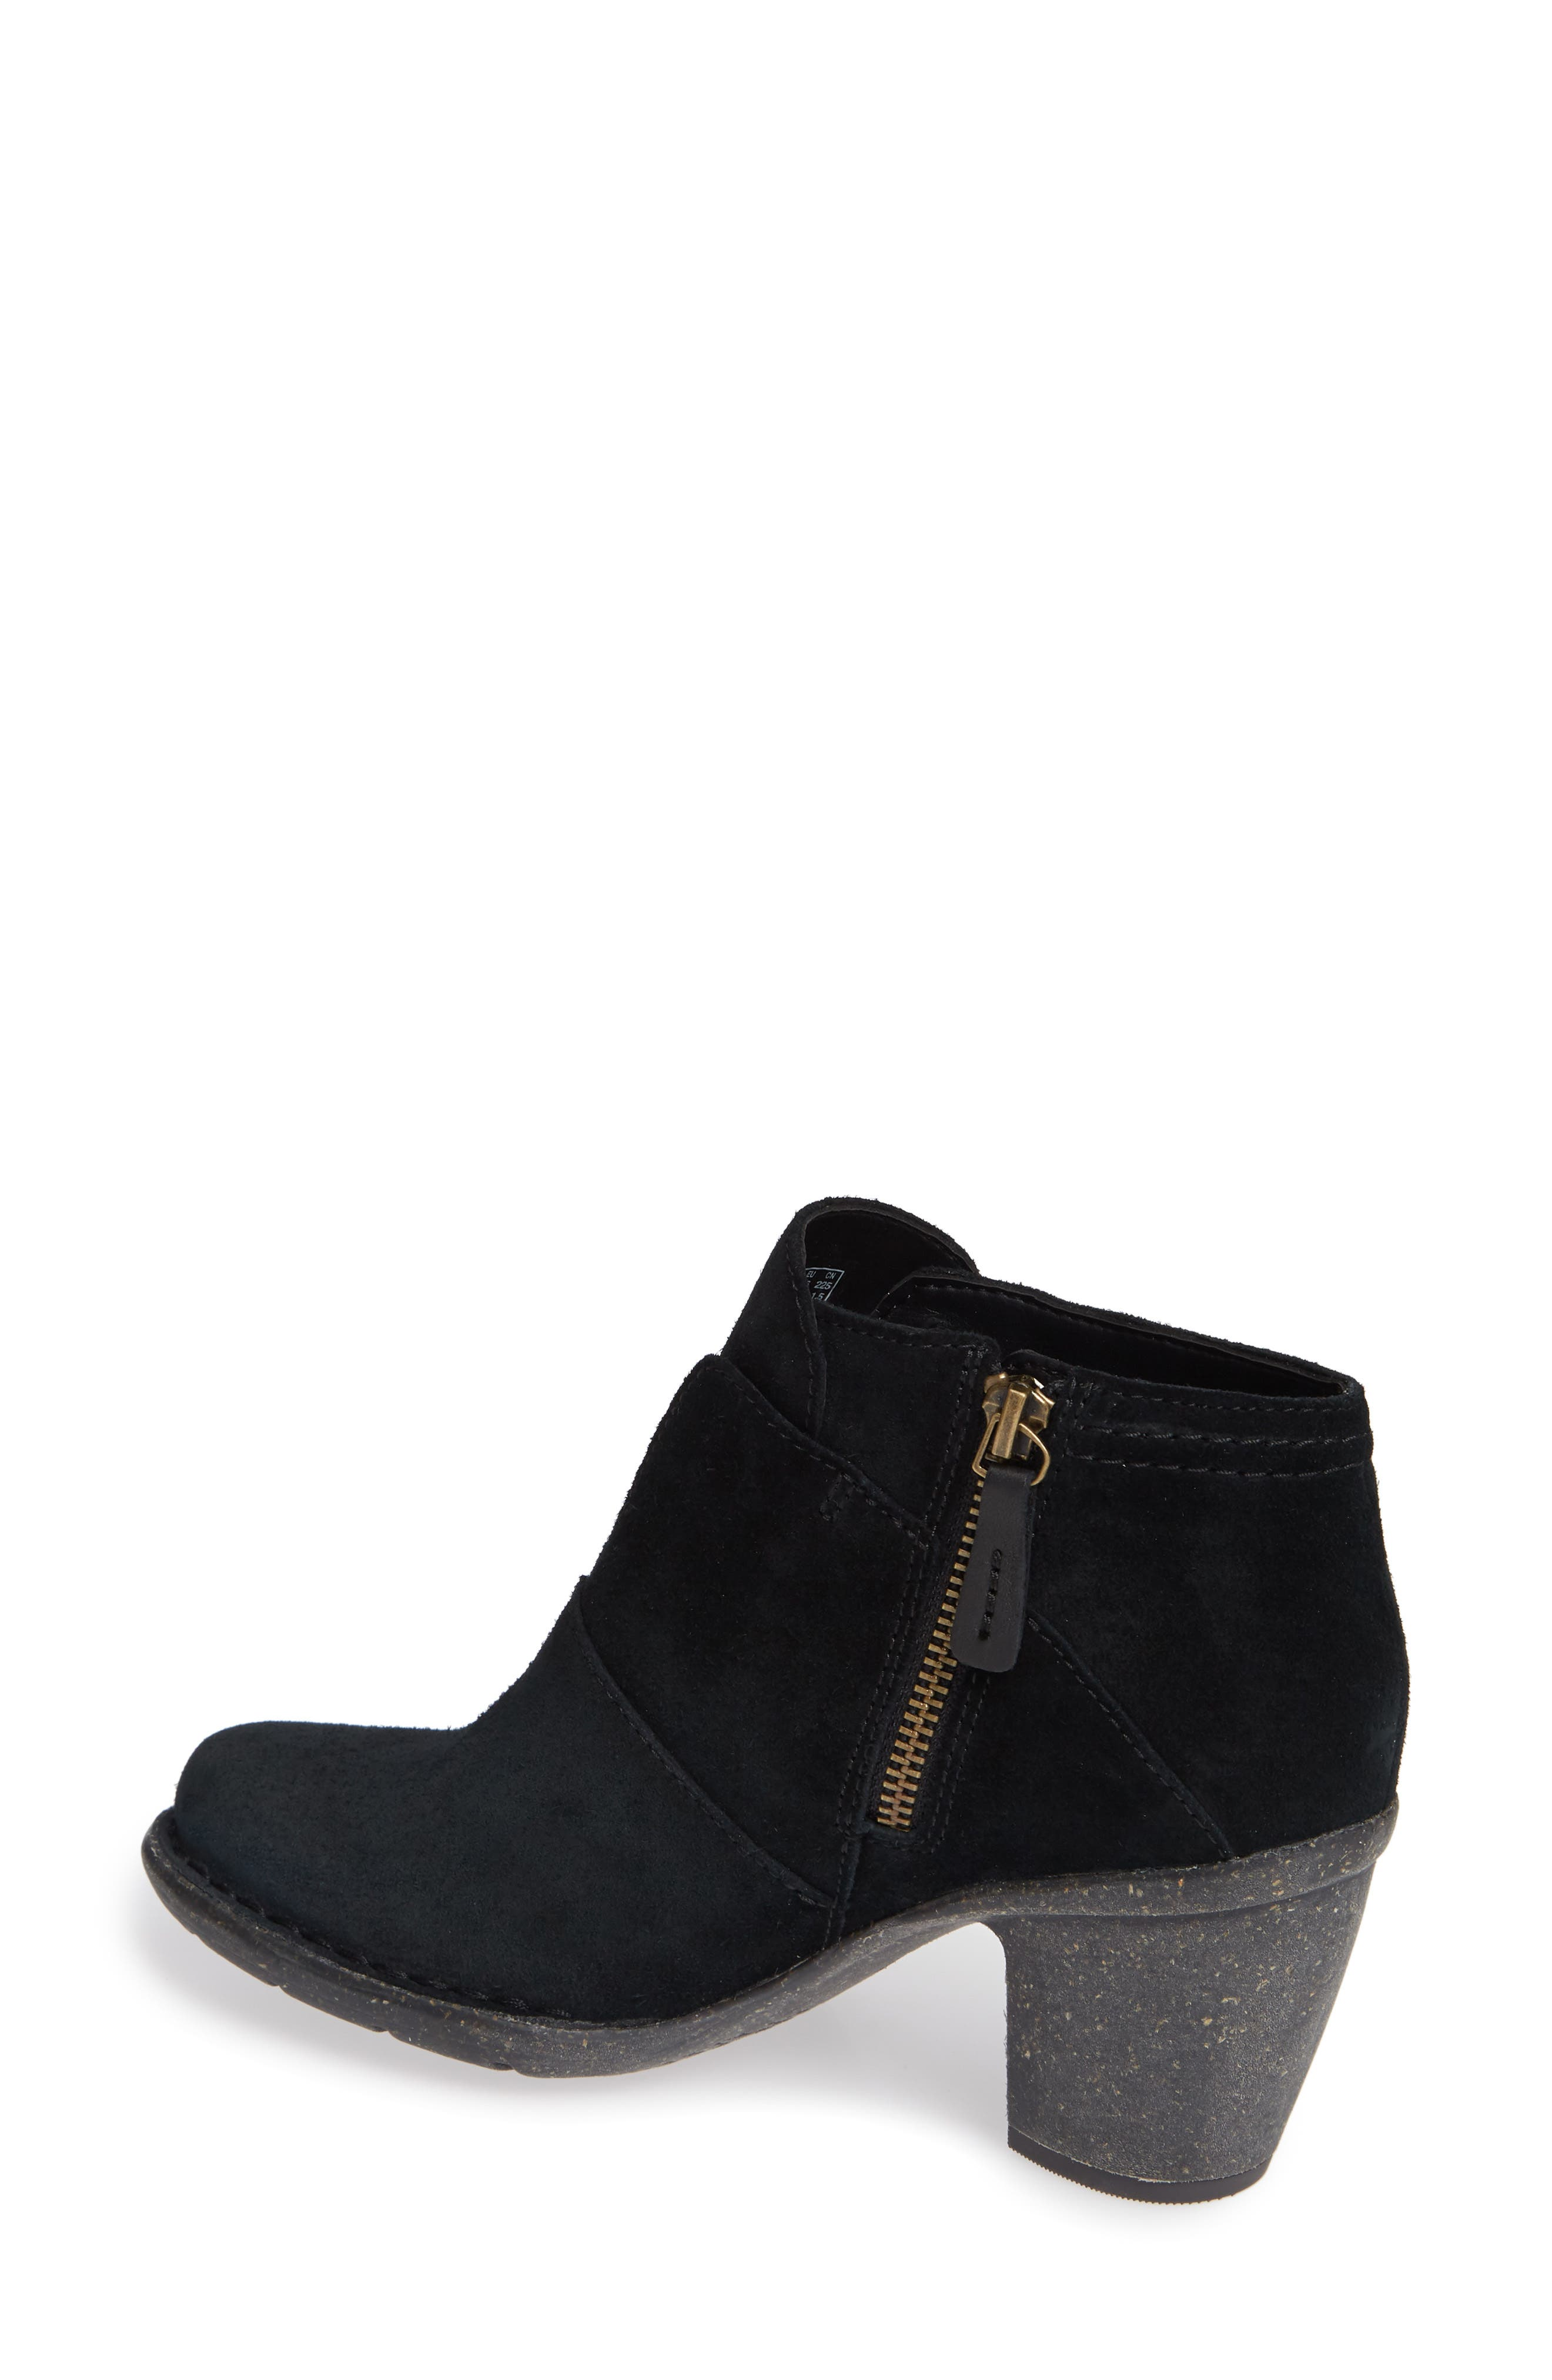 CLARKS<SUP>®</SUP>, Carleta York Bootie, Alternate thumbnail 2, color, BLACK SUEDE